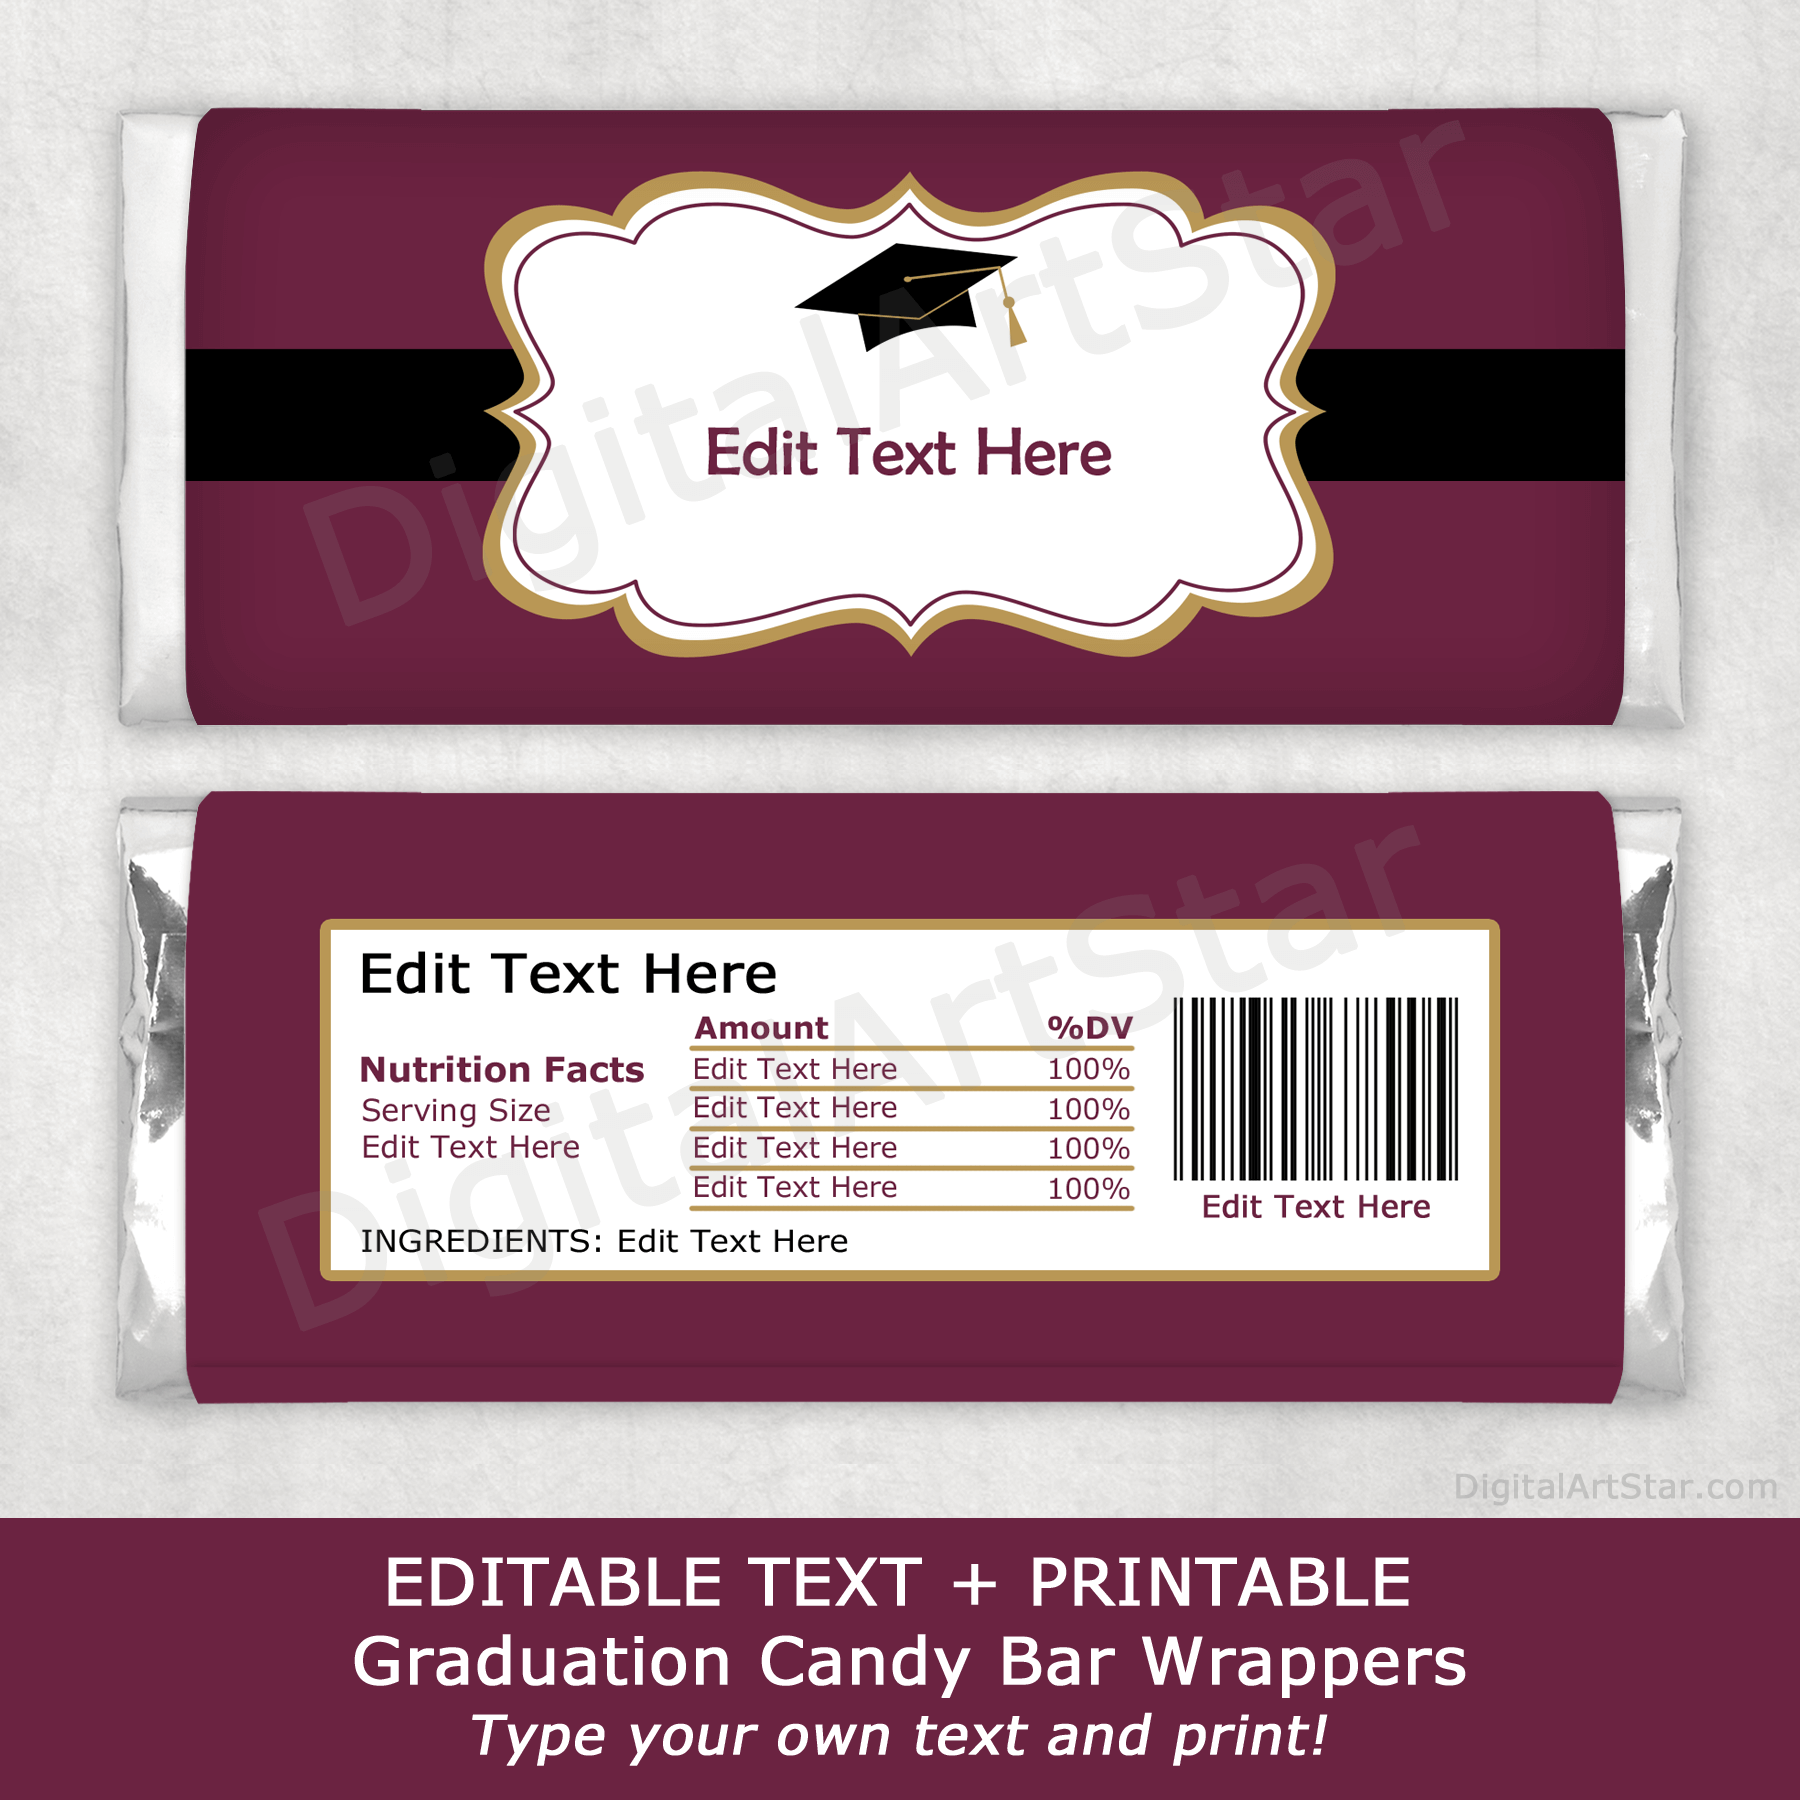 Maroon Graduation Chocolate Bar Wrappers with Black and Gold Accents